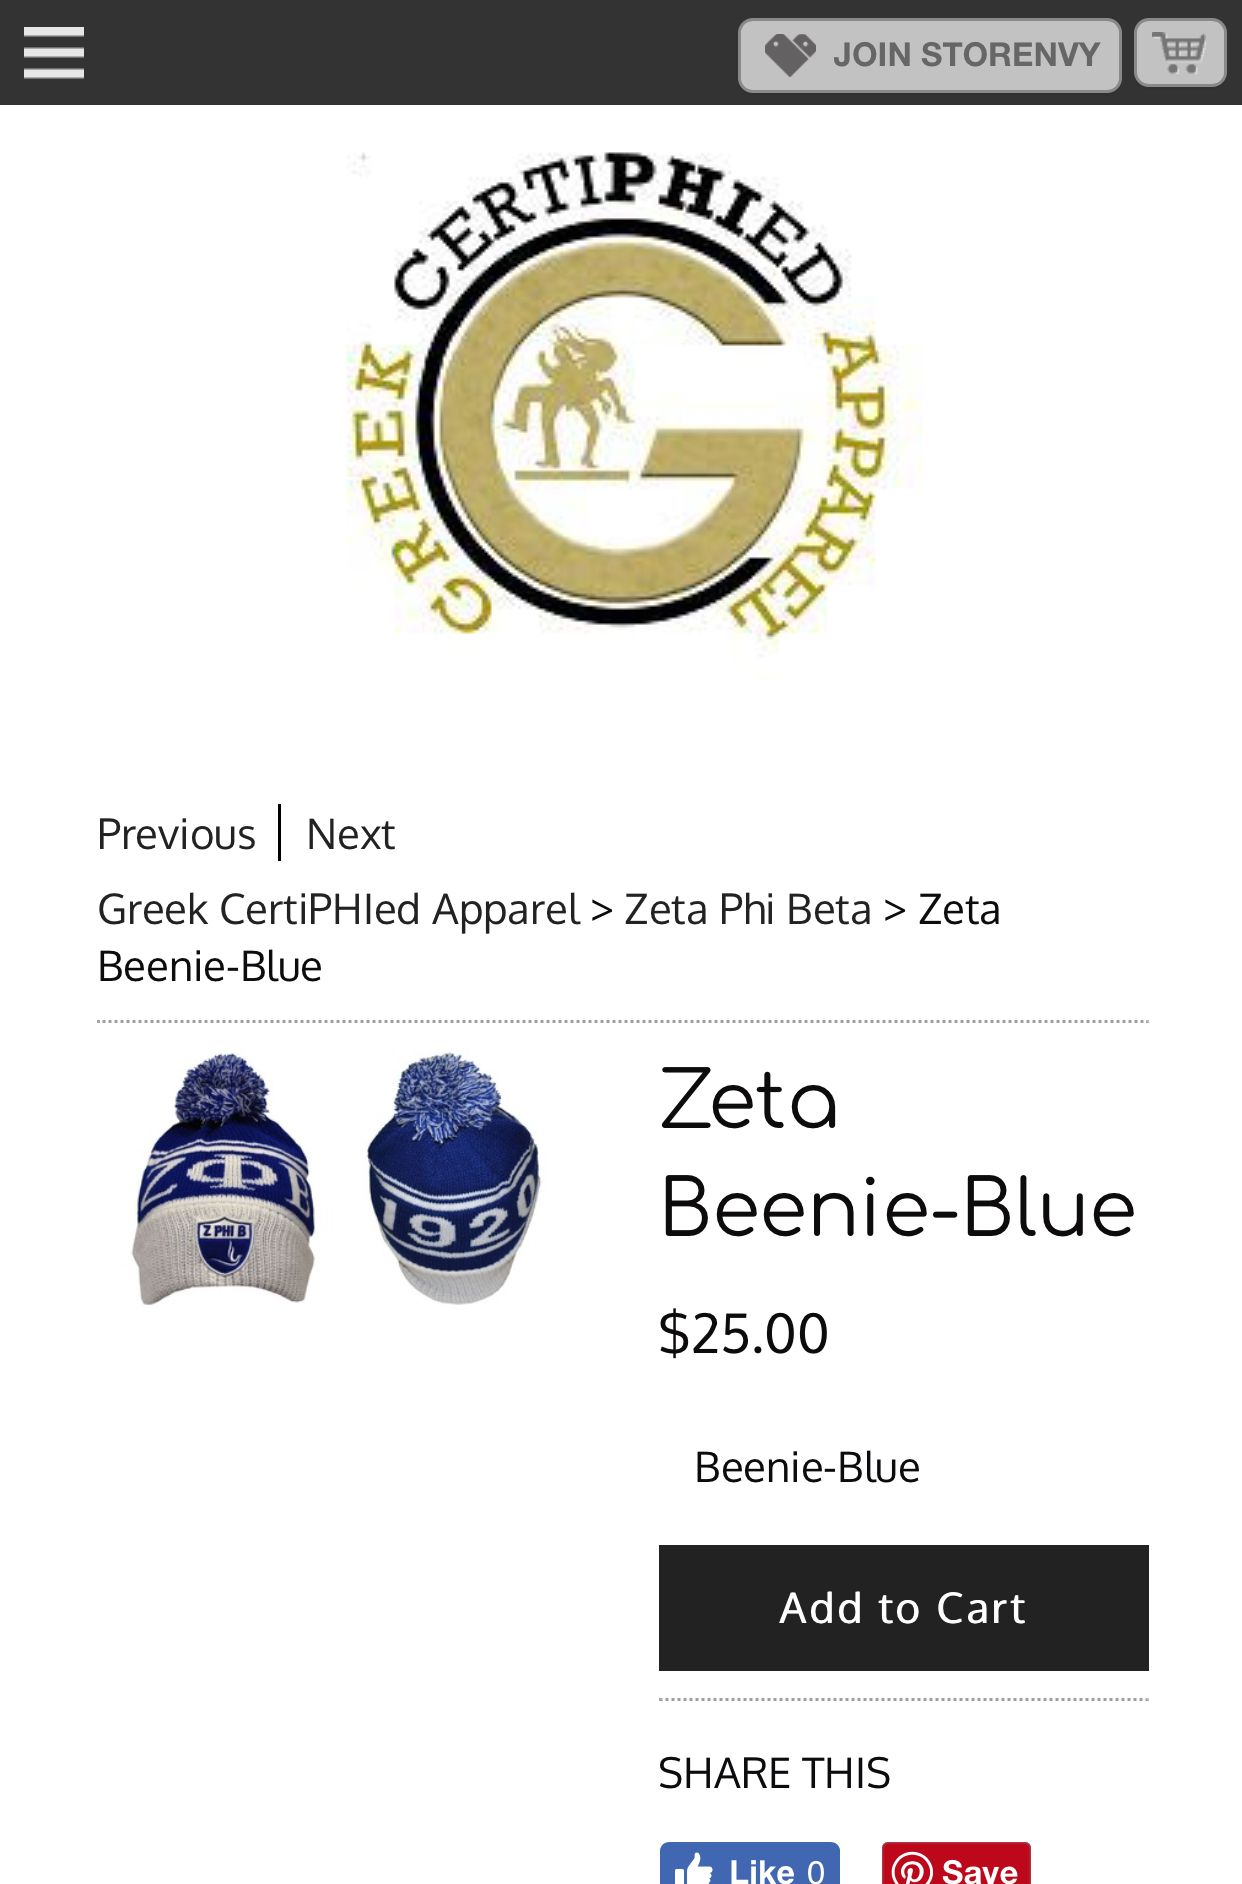 6e2cf46b Zeta Beenie-Blue from Greek CertiPHIed Apparel | Onederful Blue ...